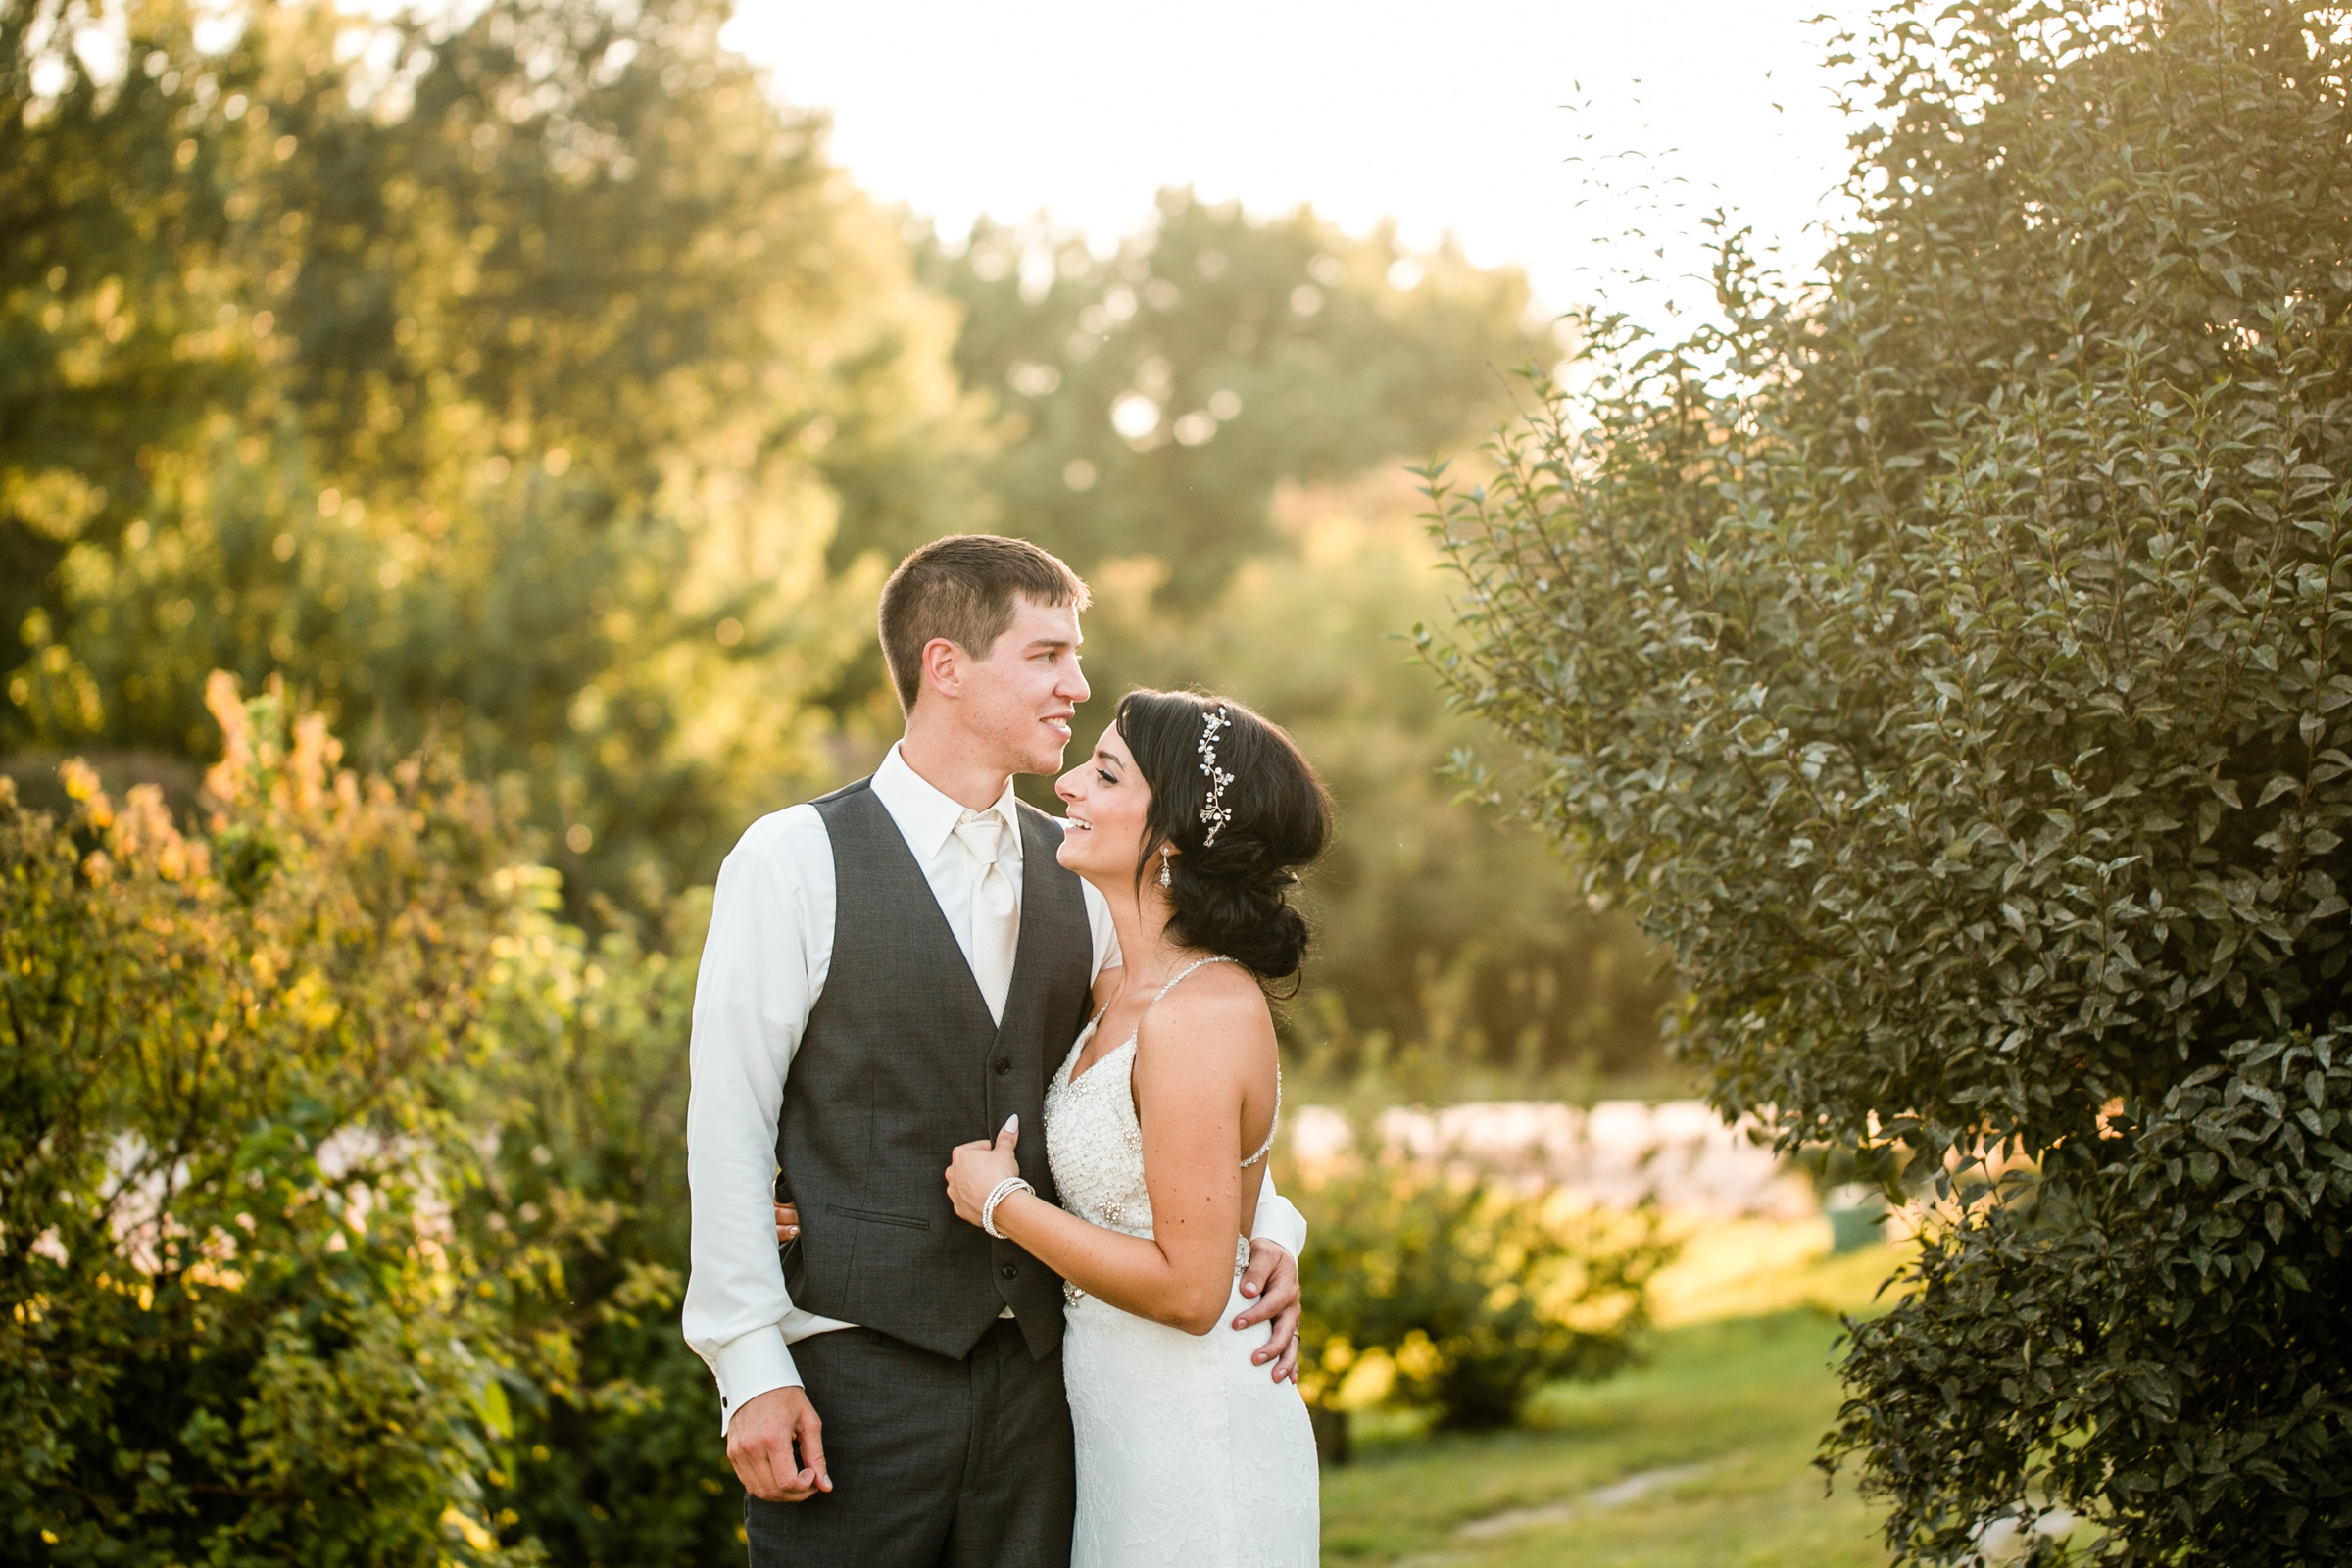 winery golden hour photos of bride and groom laughing